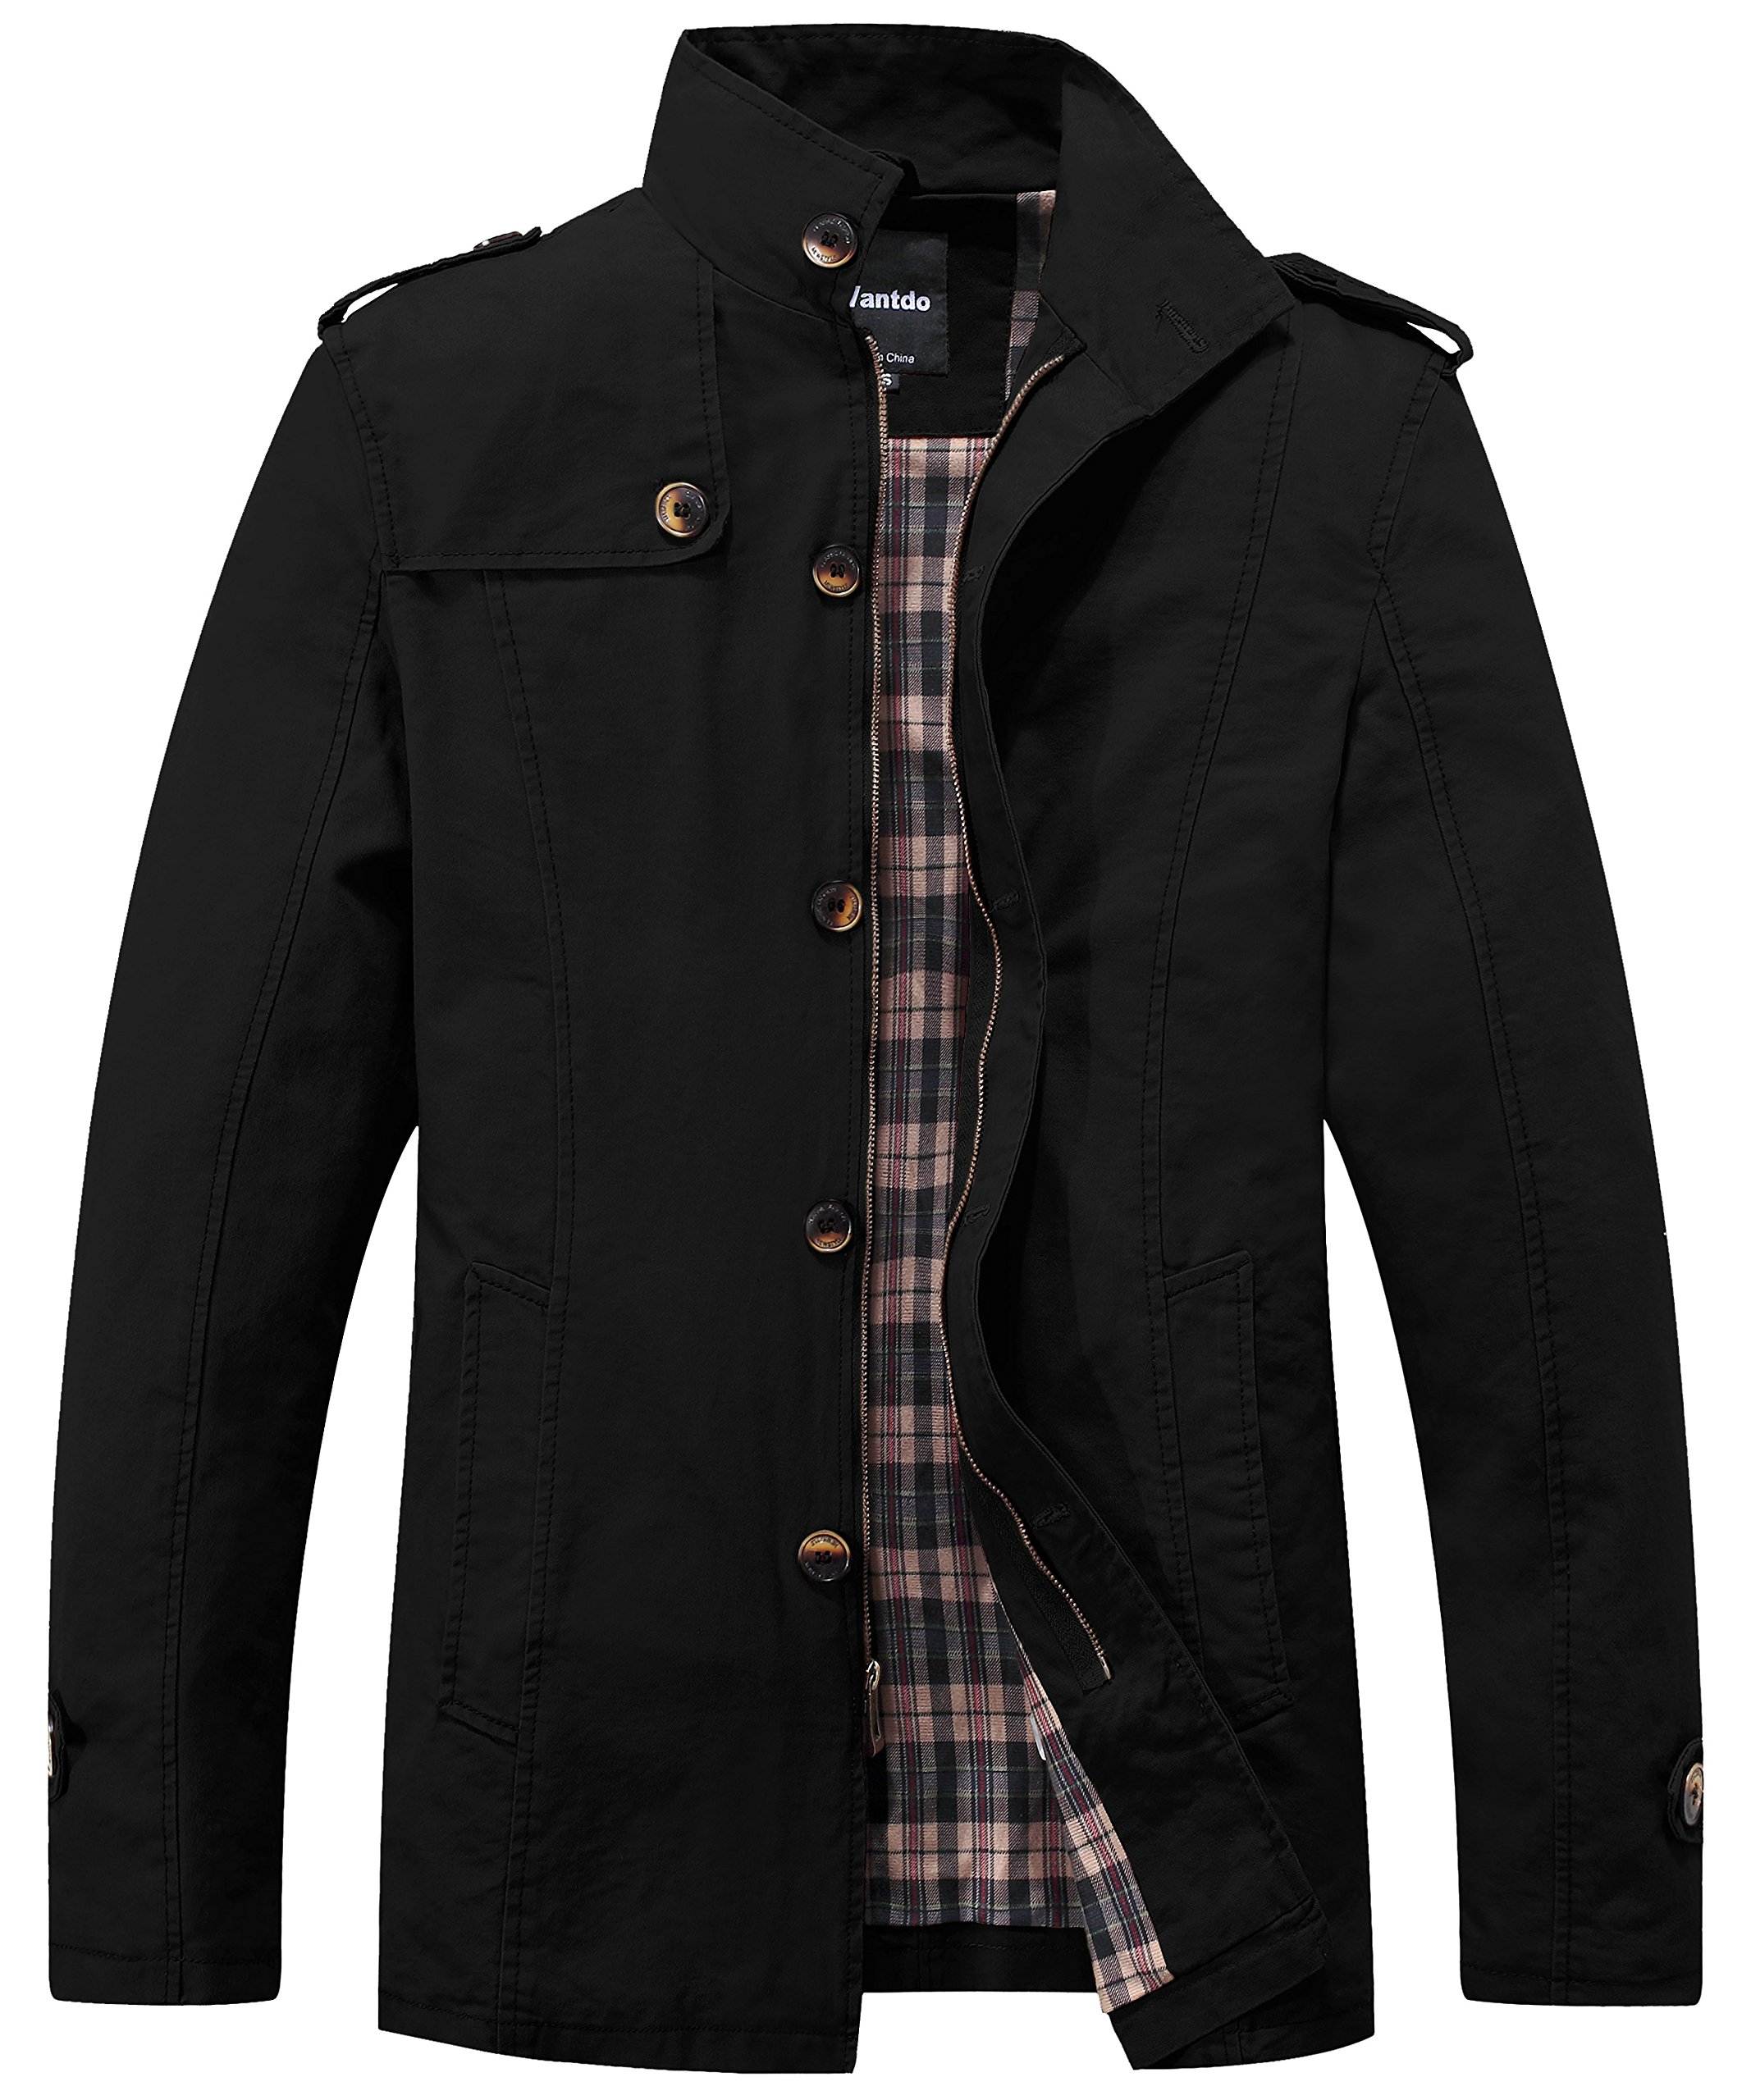 Wantdo Men's Cotton Lightweight Stand Collar Classic Jacket X-Large Black by Wantdo